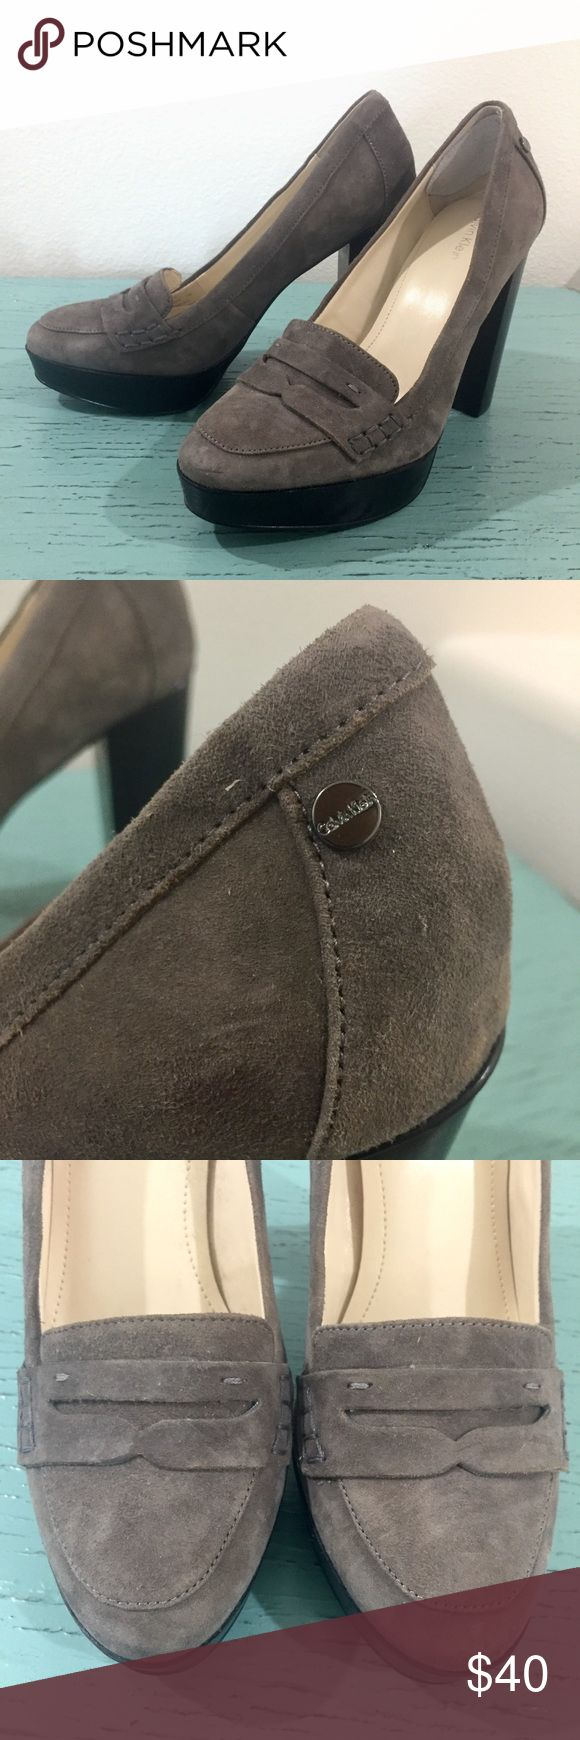 NEW:Calvin Klein Chunky Grey Suede Heels, 7 I've owned these for a few years but they have never been worn. Grey suede chinky loafer heels are accented on the side of each heel with CK hardware. The heels have already been fitted with adhesive heel protectors. Slightly dusty 🙊 4 inch heel on a one once platform. Calvin Klein Shoes Heels